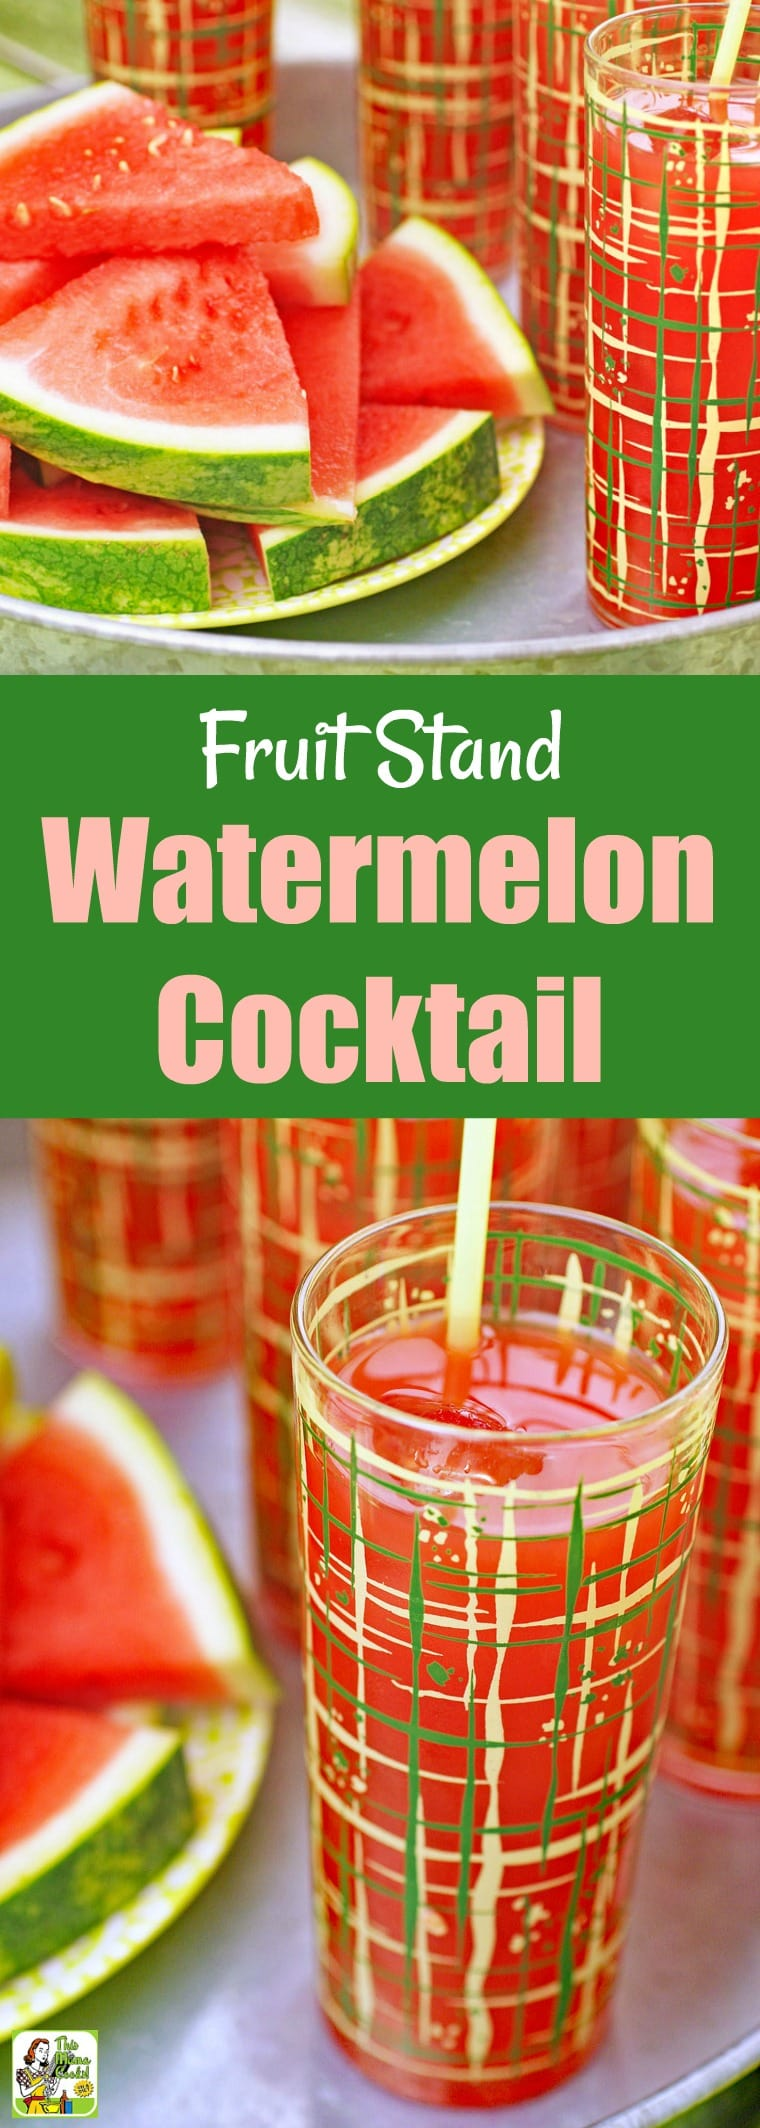 Sit a spell and relax with a Fruit Stand Watermelon Cocktail. There's nothing more refreshing than sipping on a watermelon drink recipe when it's warm out. #watermelon #fruit #recipes #easy #recipeoftheday #easyrecipes #cocktails #cocktail #drinks #drinking #alcohol #whiskey #peach